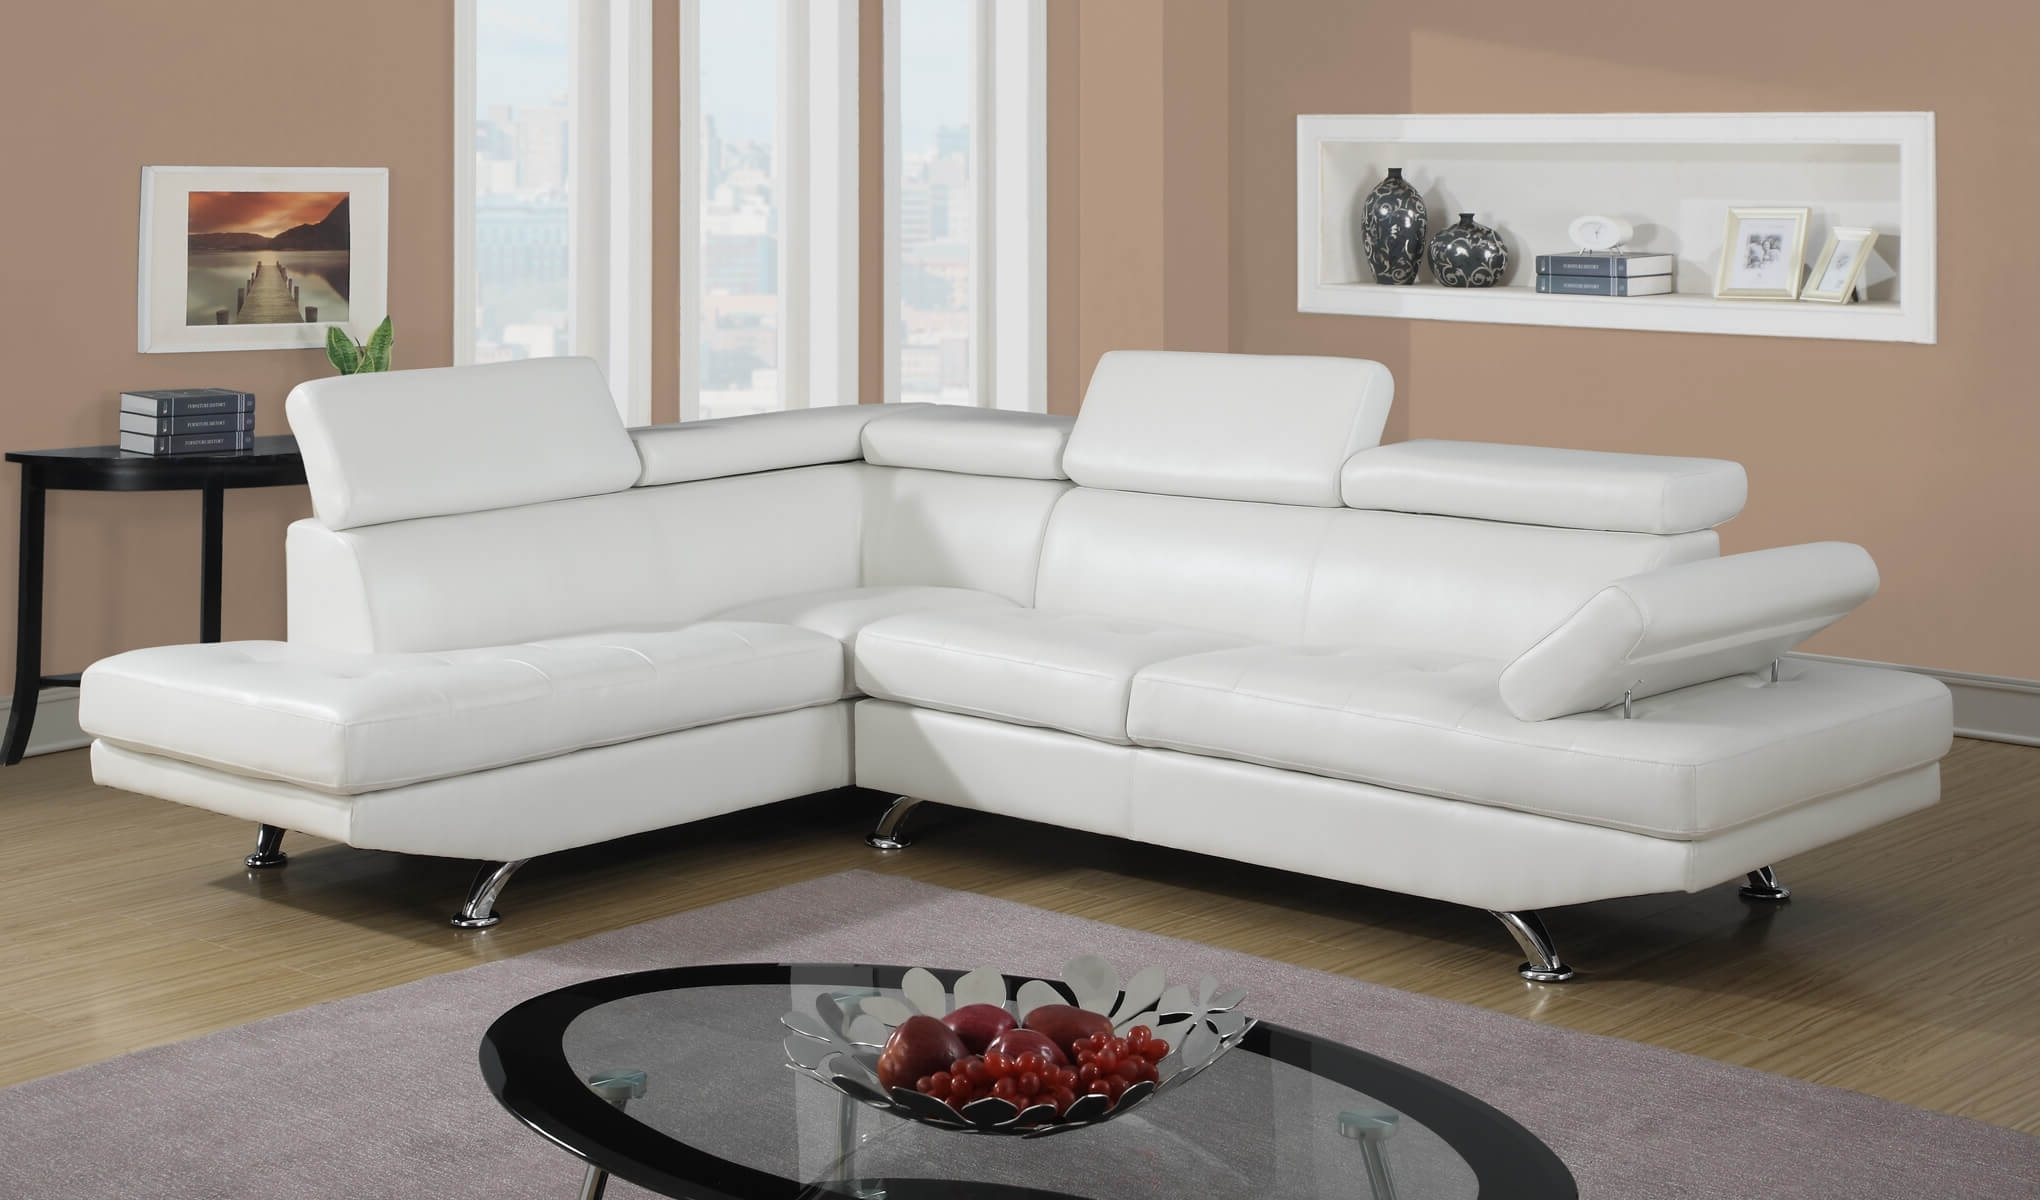 sofa sectional with white for in mn table built talia conversation